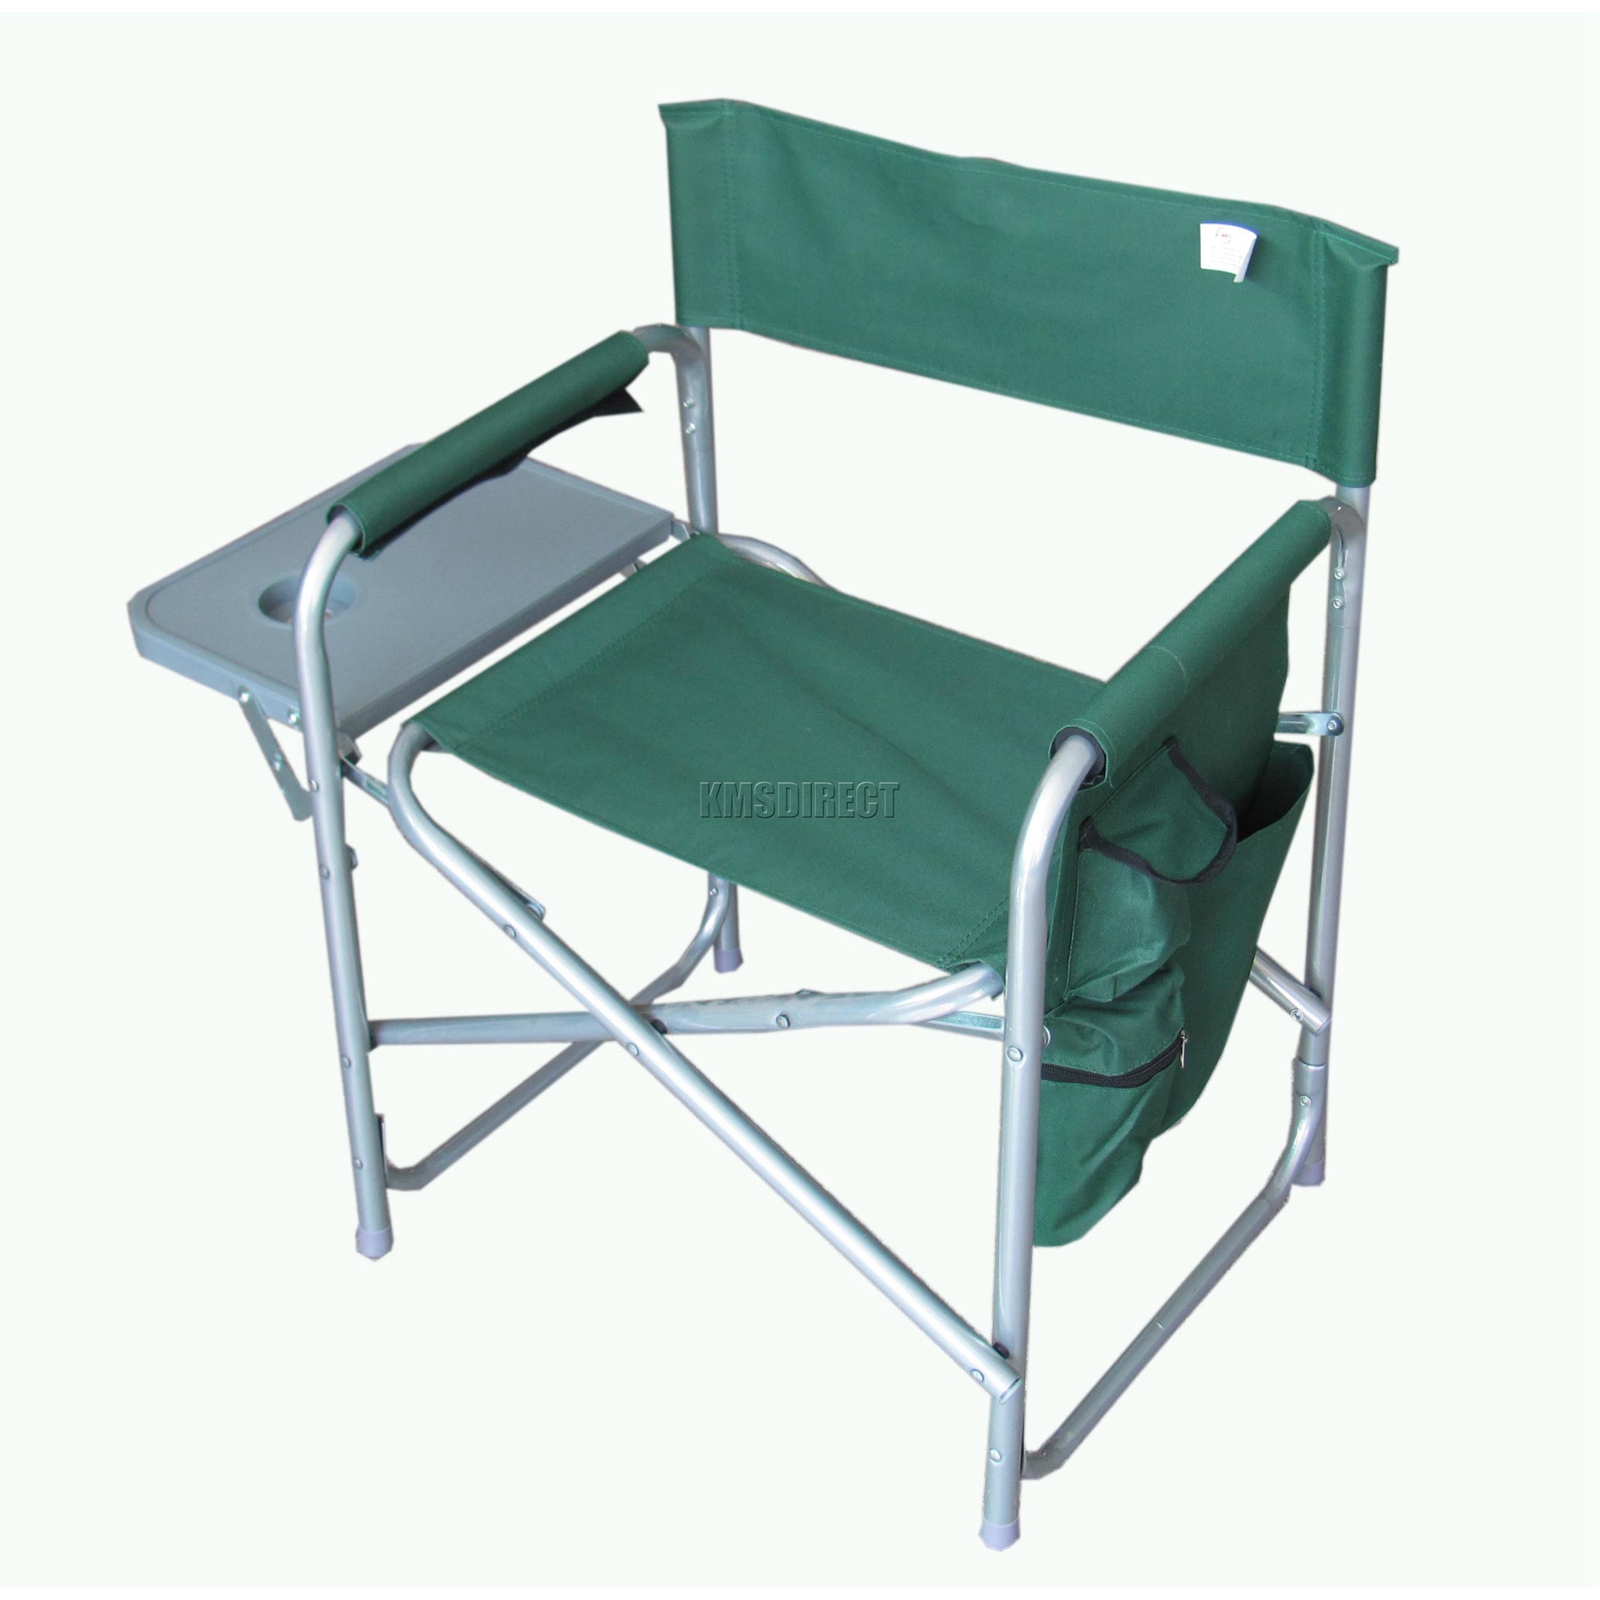 Folding Portable Fishing Chair Camping Outdoor Garden Seat Green With Side Ta